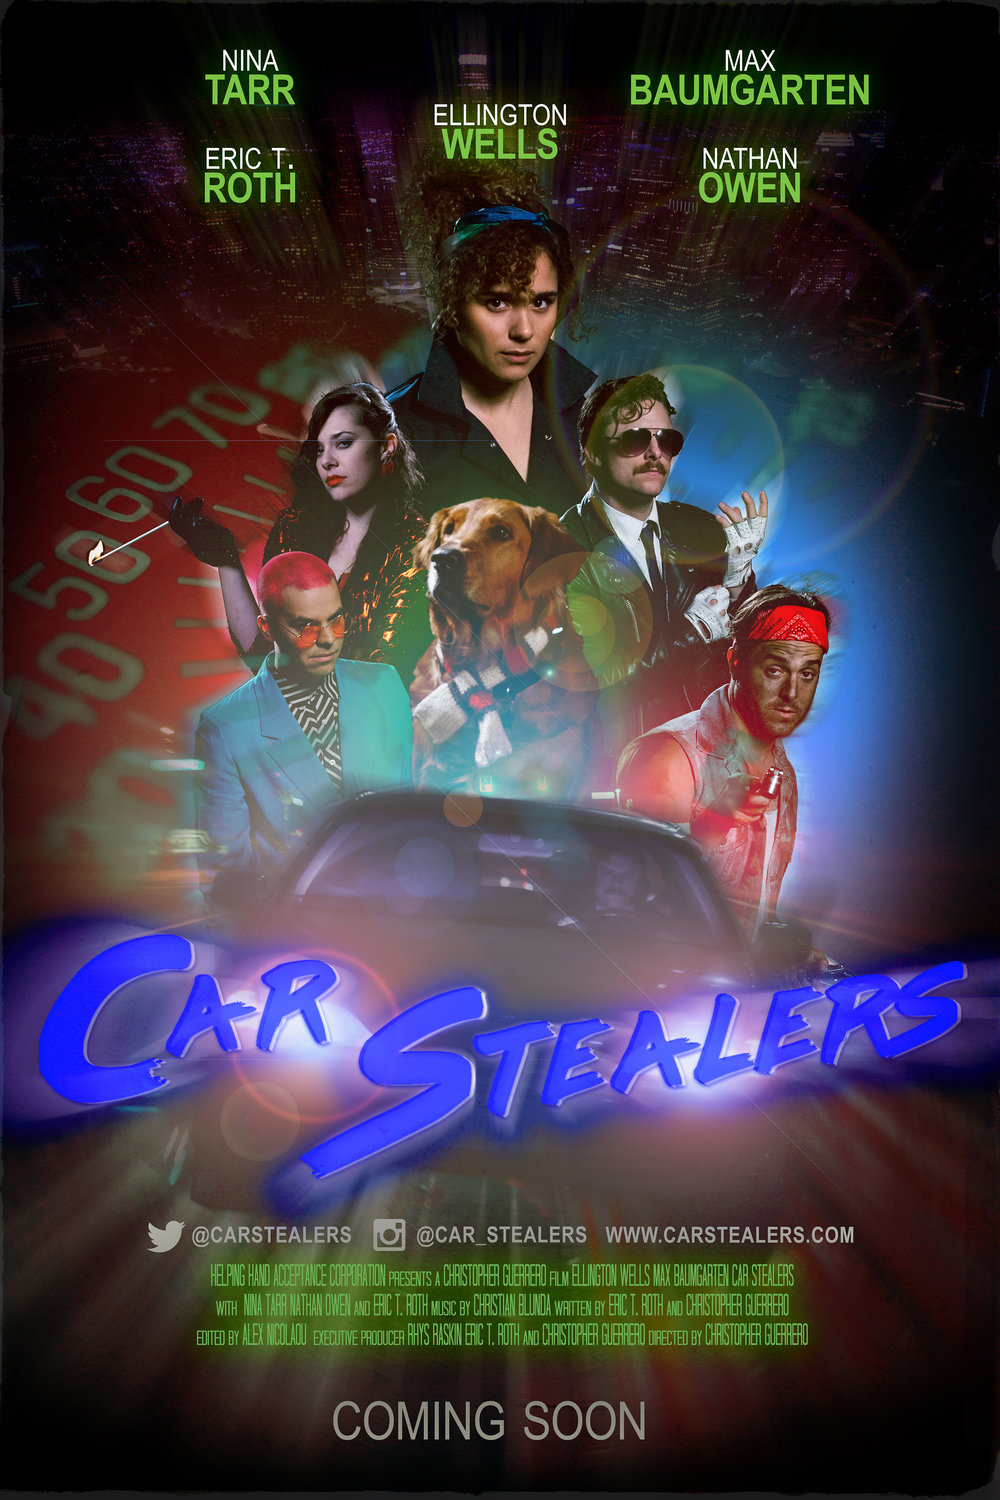 CAR STEALERS SCREENINGS - RSVP TO A SCREENING BELOW